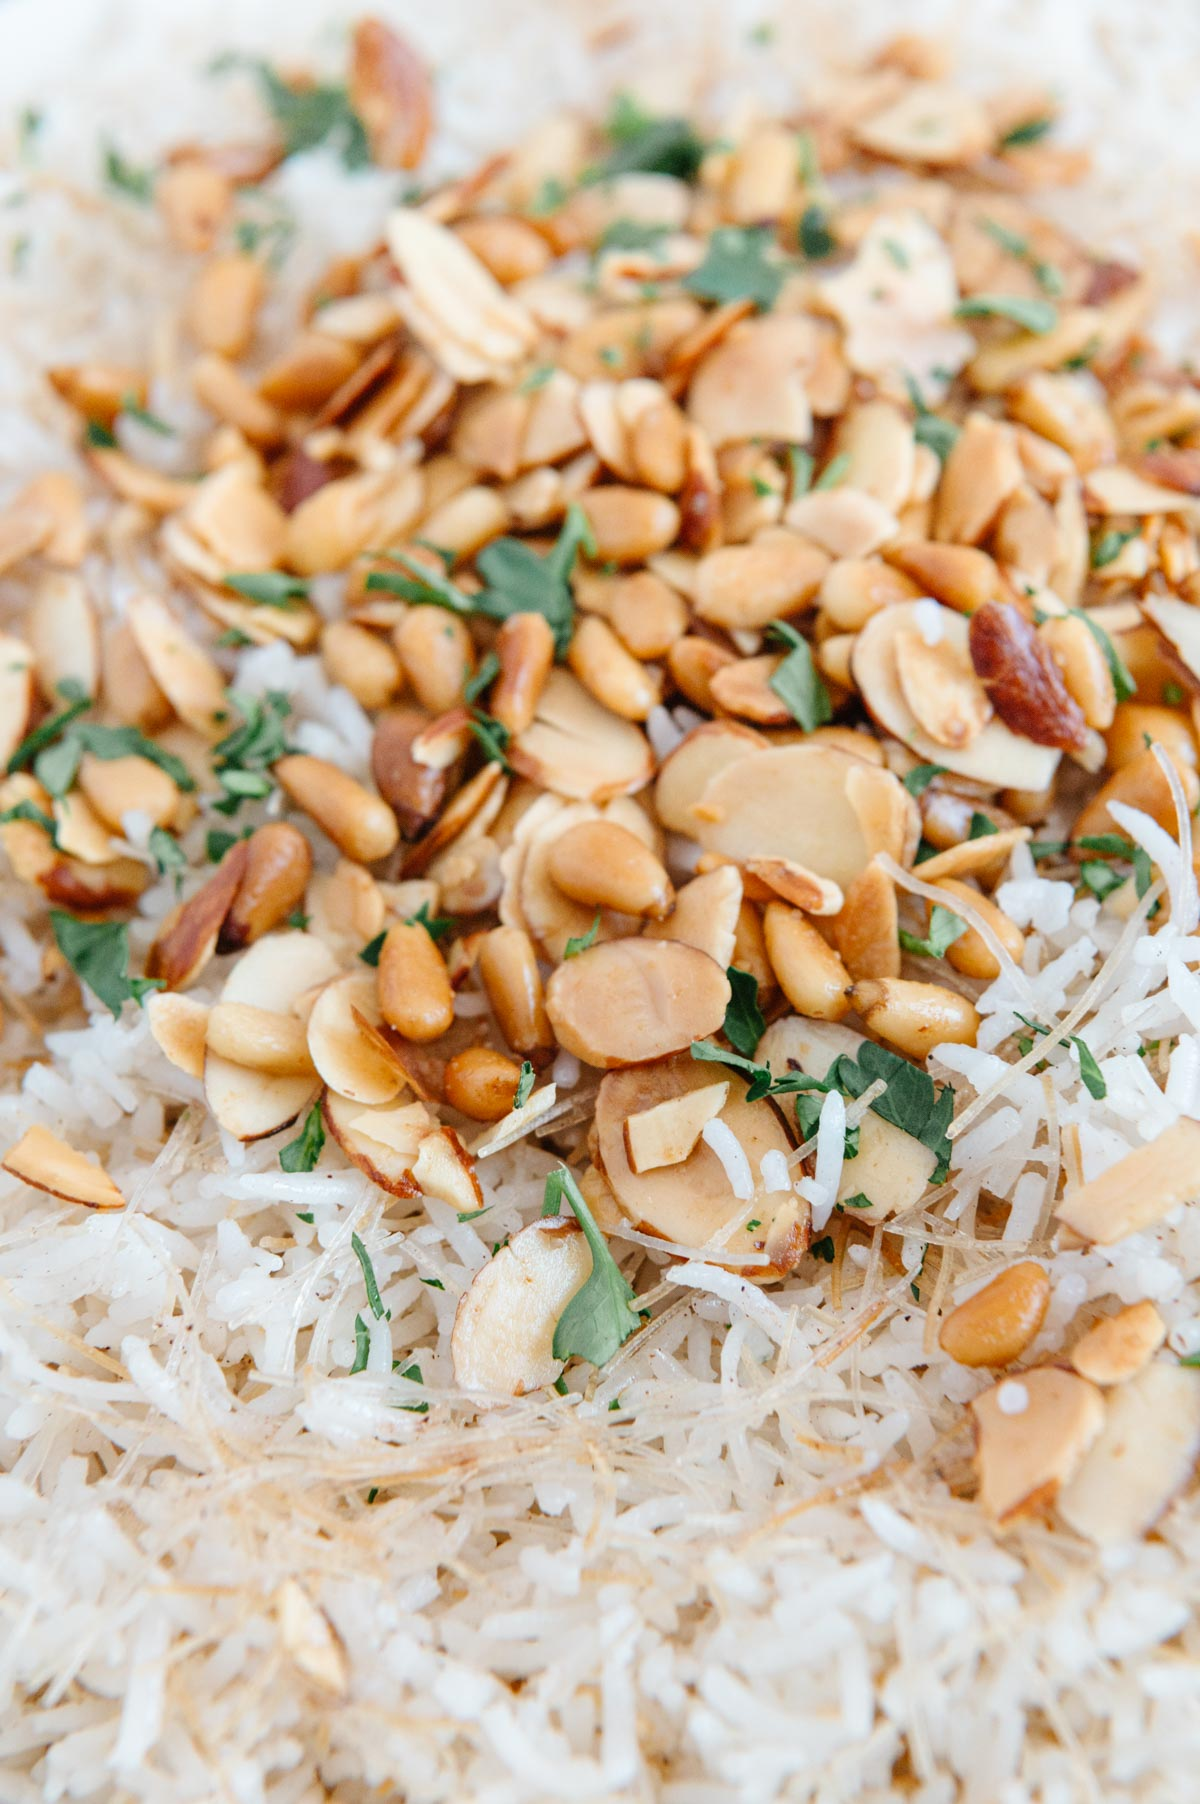 Lebanese Rice with Vermicelli Noodles